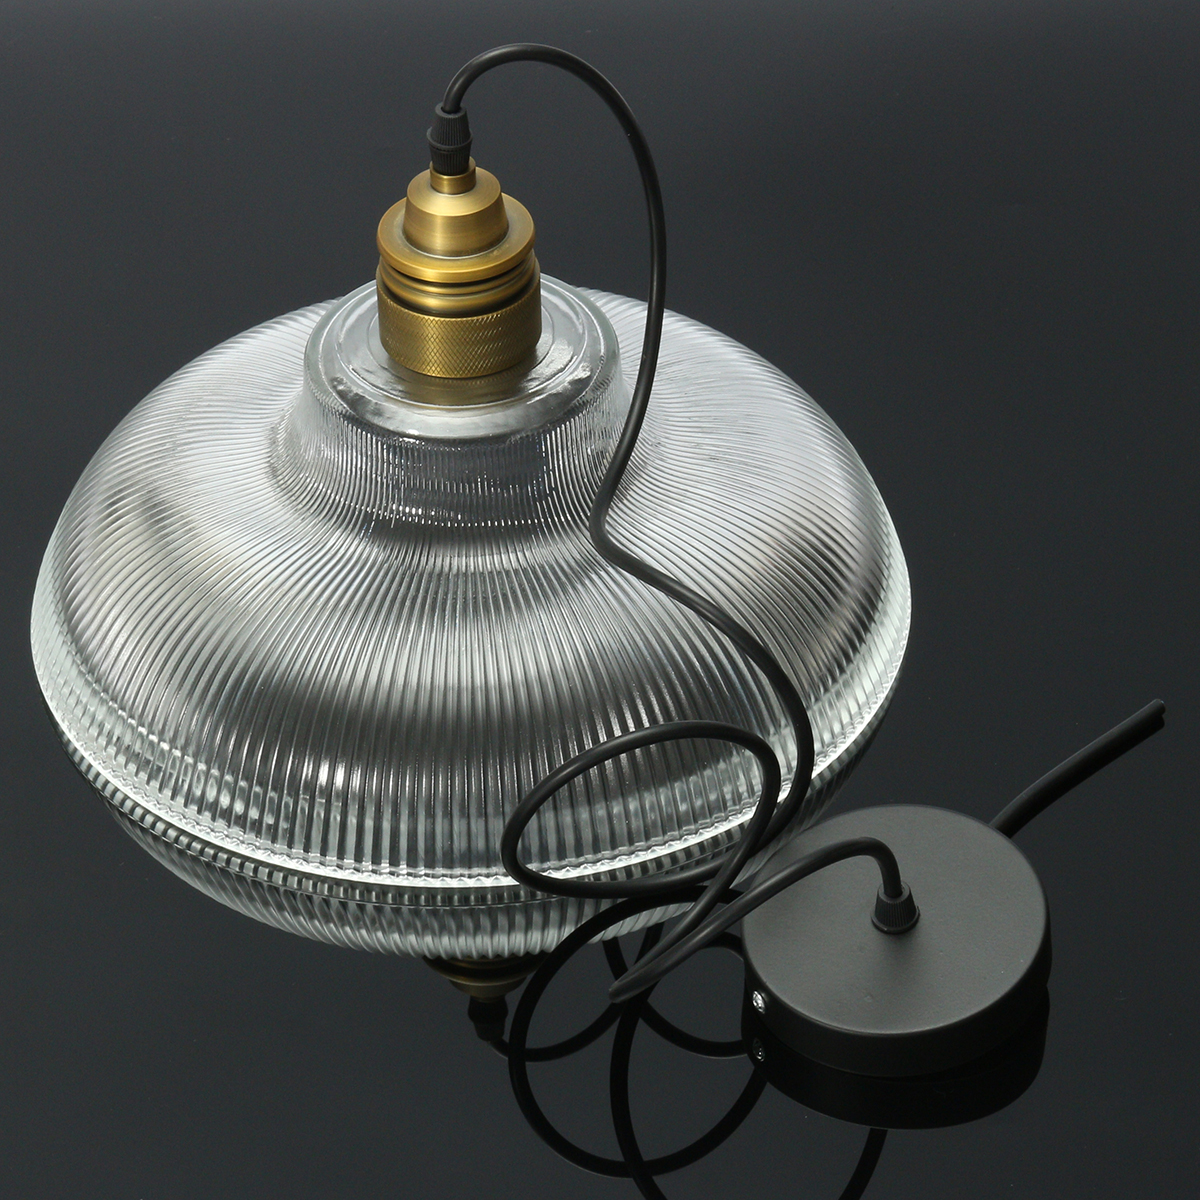 E27 Industrial Copper Glass Shade Ceiling Light Chandelier Pendant Fitting Lamp